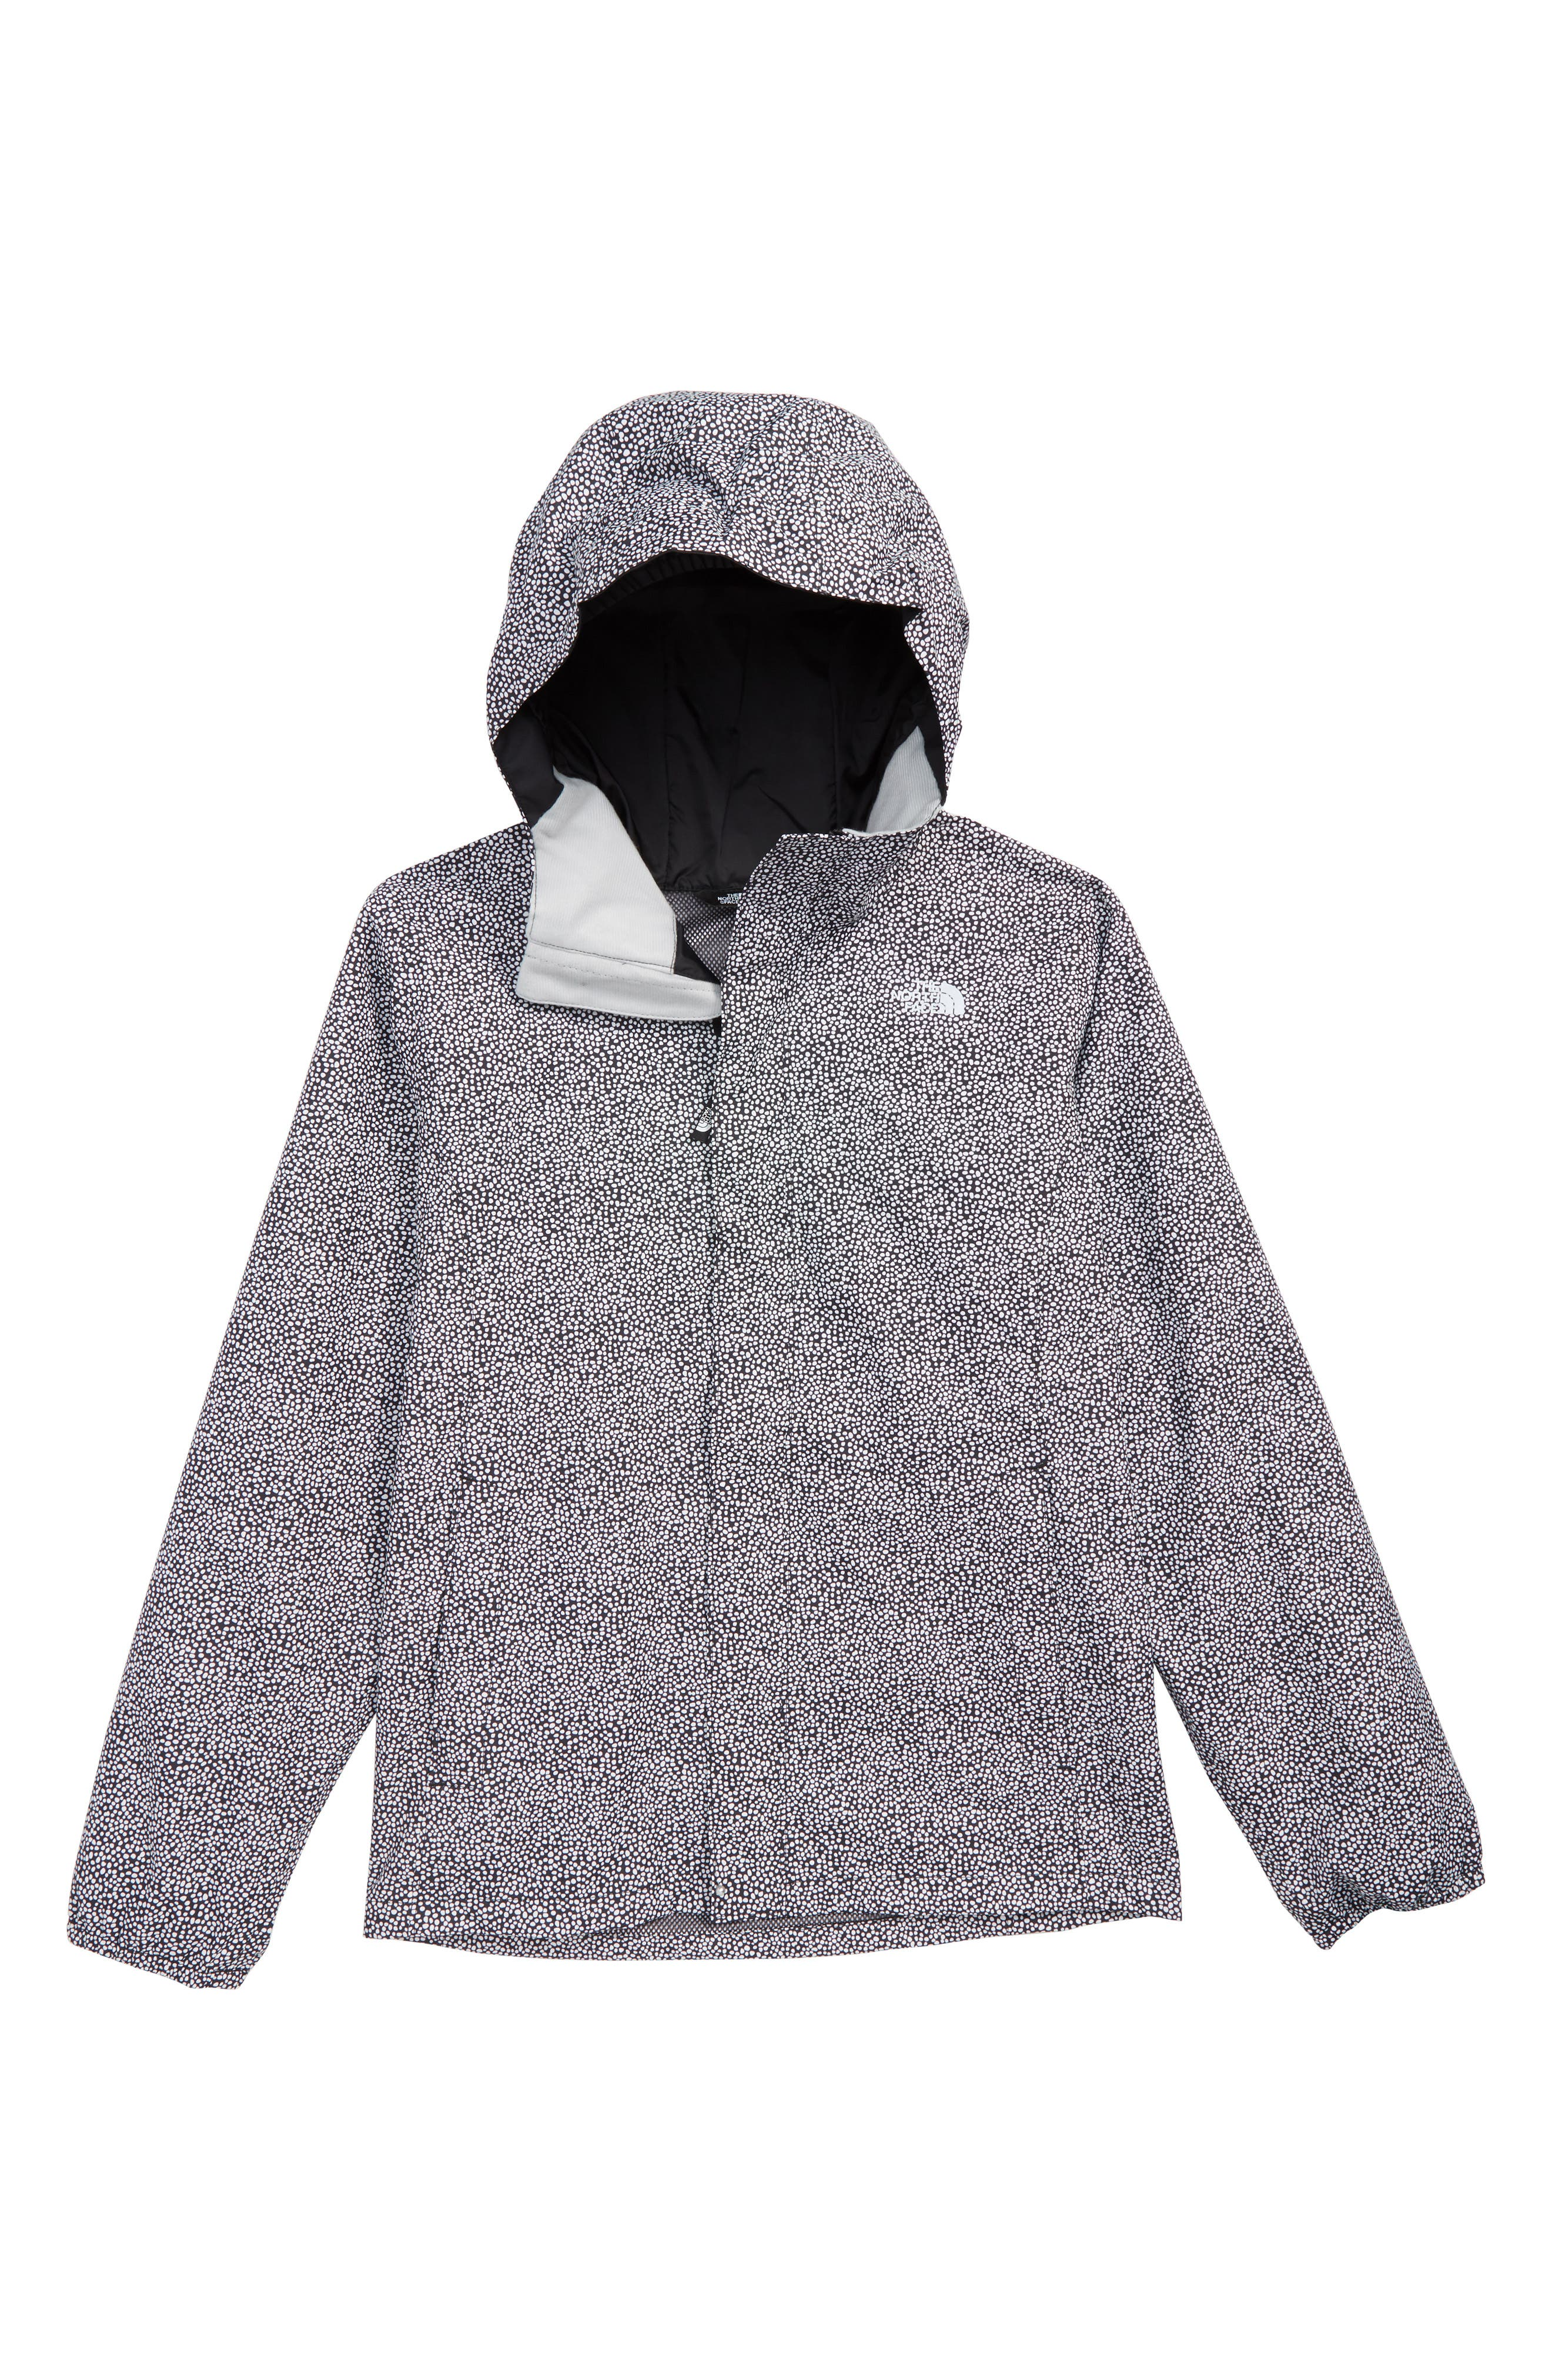 THE NORTH FACE Resolve Reflective Waterproof Jacket, Main, color, TNF WHITE MINI DOT PRINT